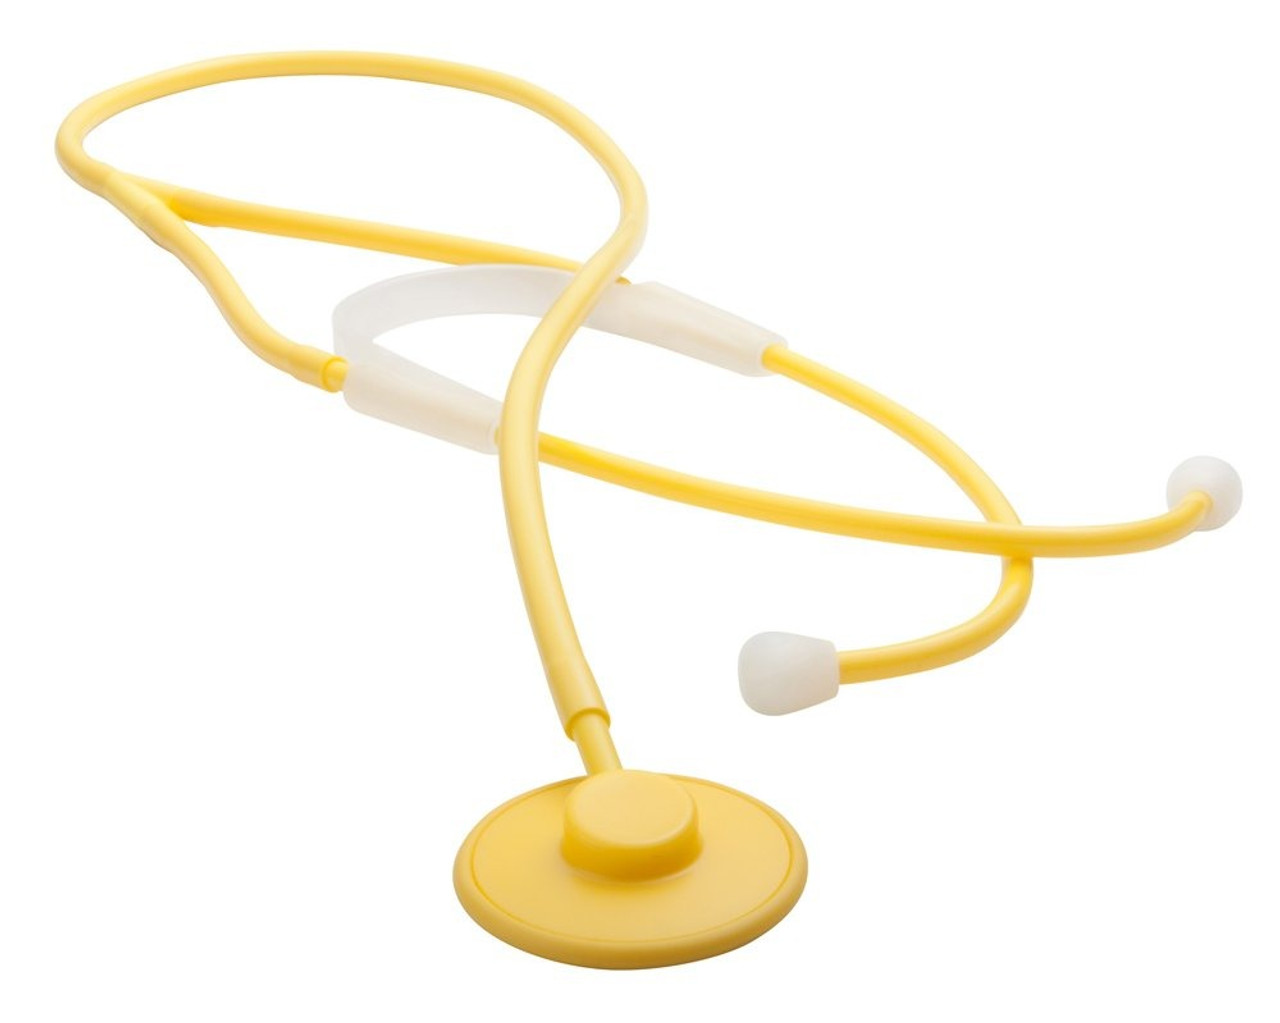 Disposable Stethoscope, Case of 50 - Yellow